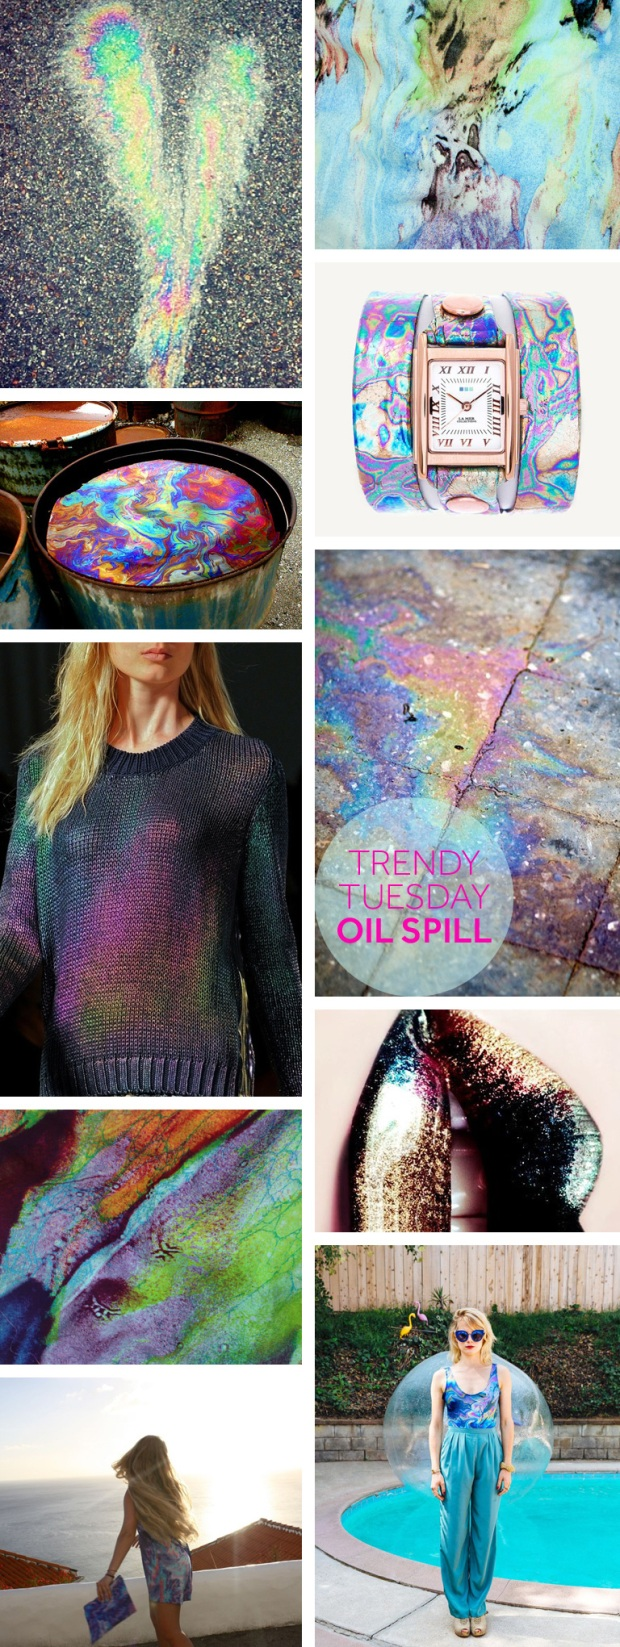 trendy-tuesday-oil-spill